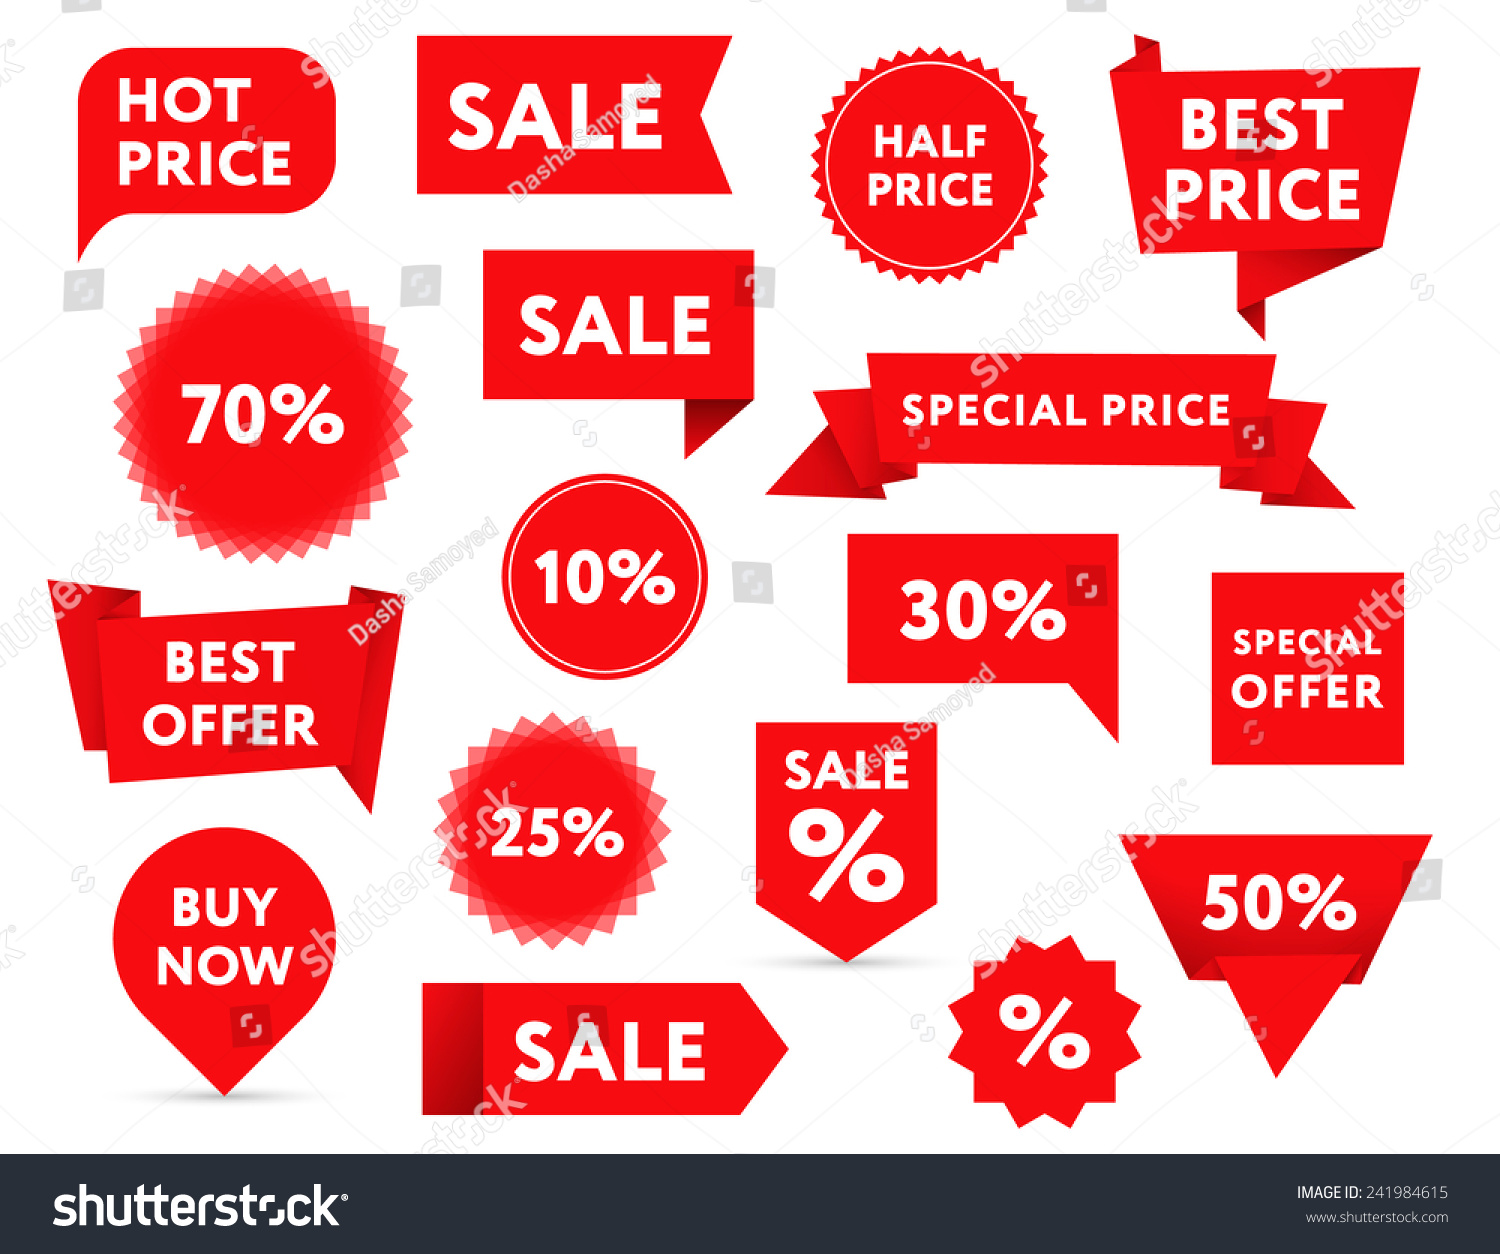 Set Red Sale Banners Different Shapes Stock Vector 241984615 ...